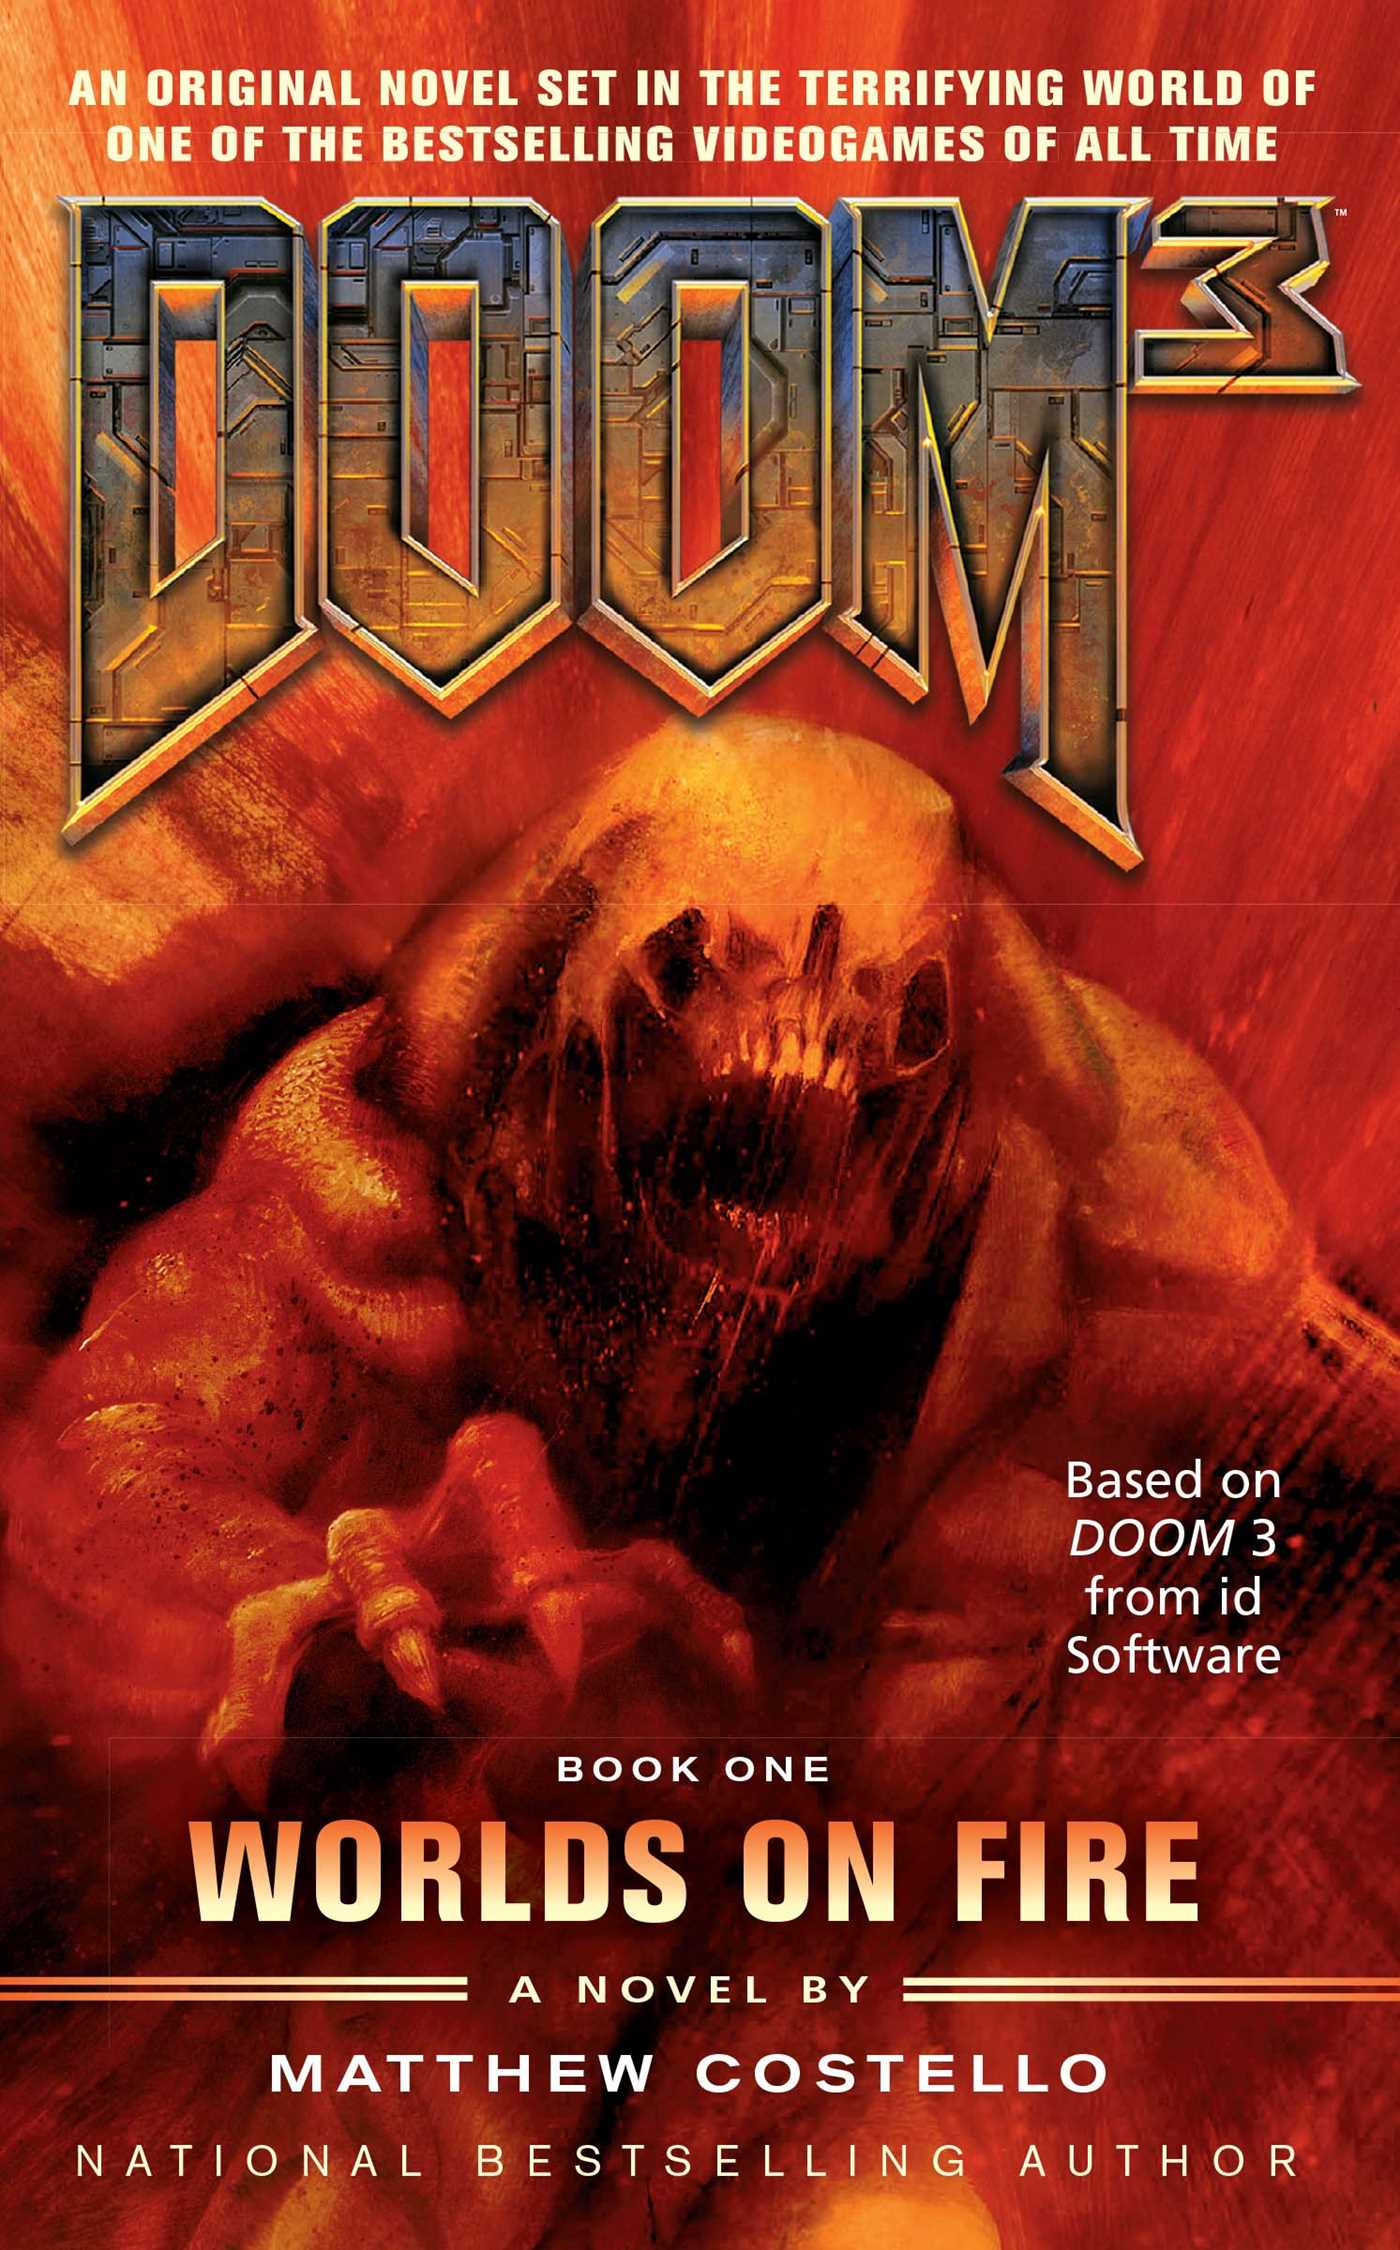 Doom-3-worlds-on-fire-9781476791265_hr